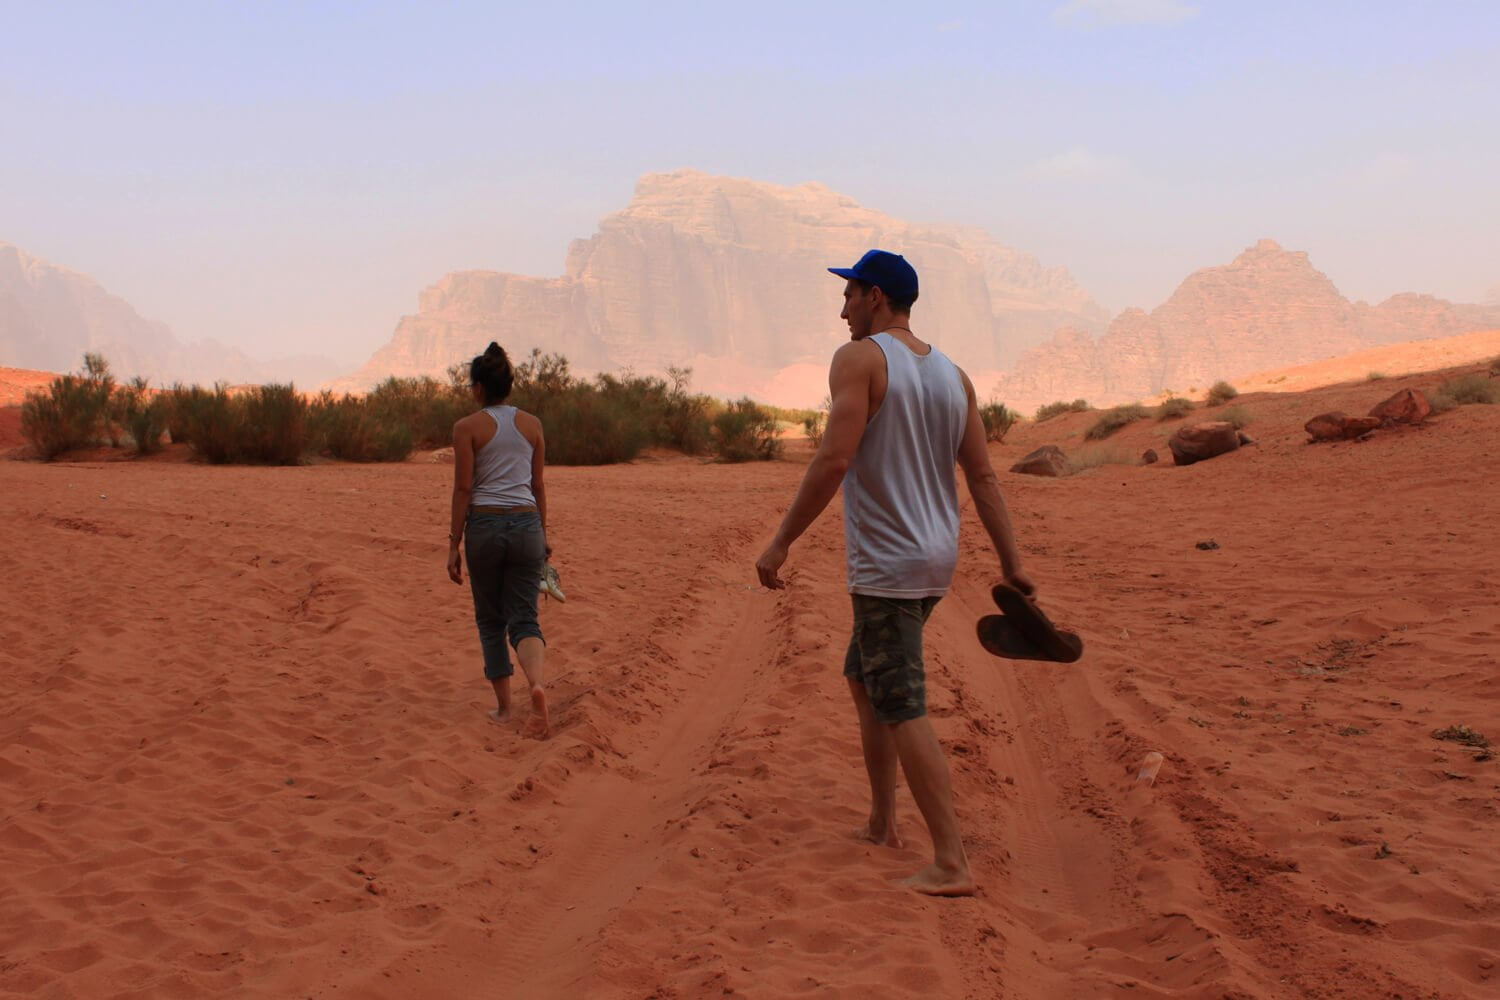 Chris and Kim walking in the desert in Jordan.